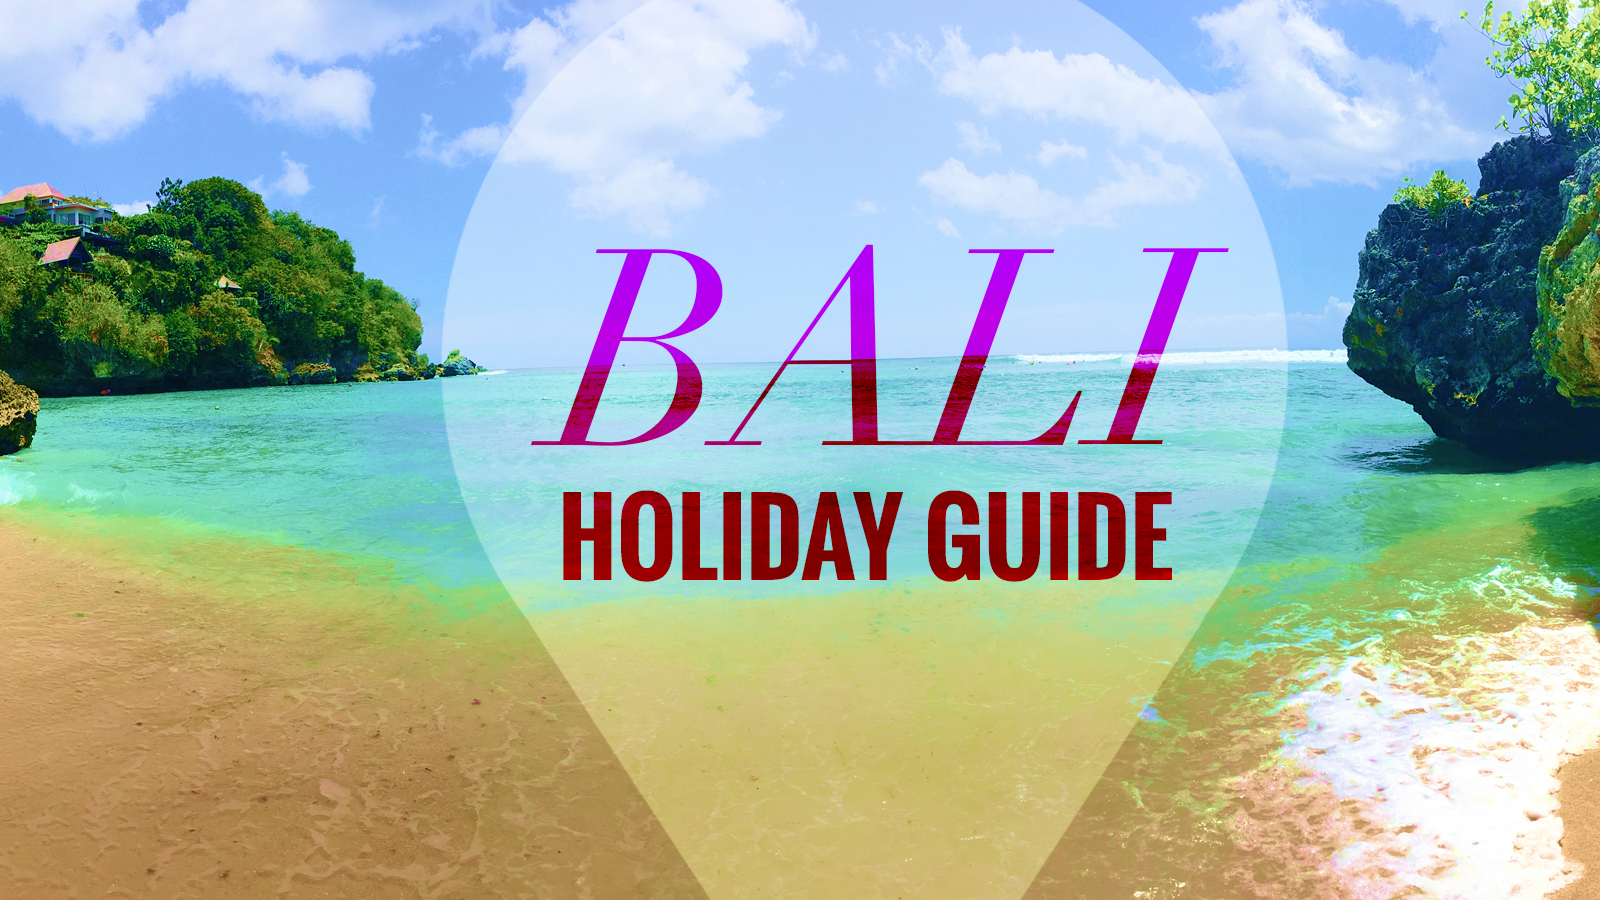 Destination Guide Bali Holiday